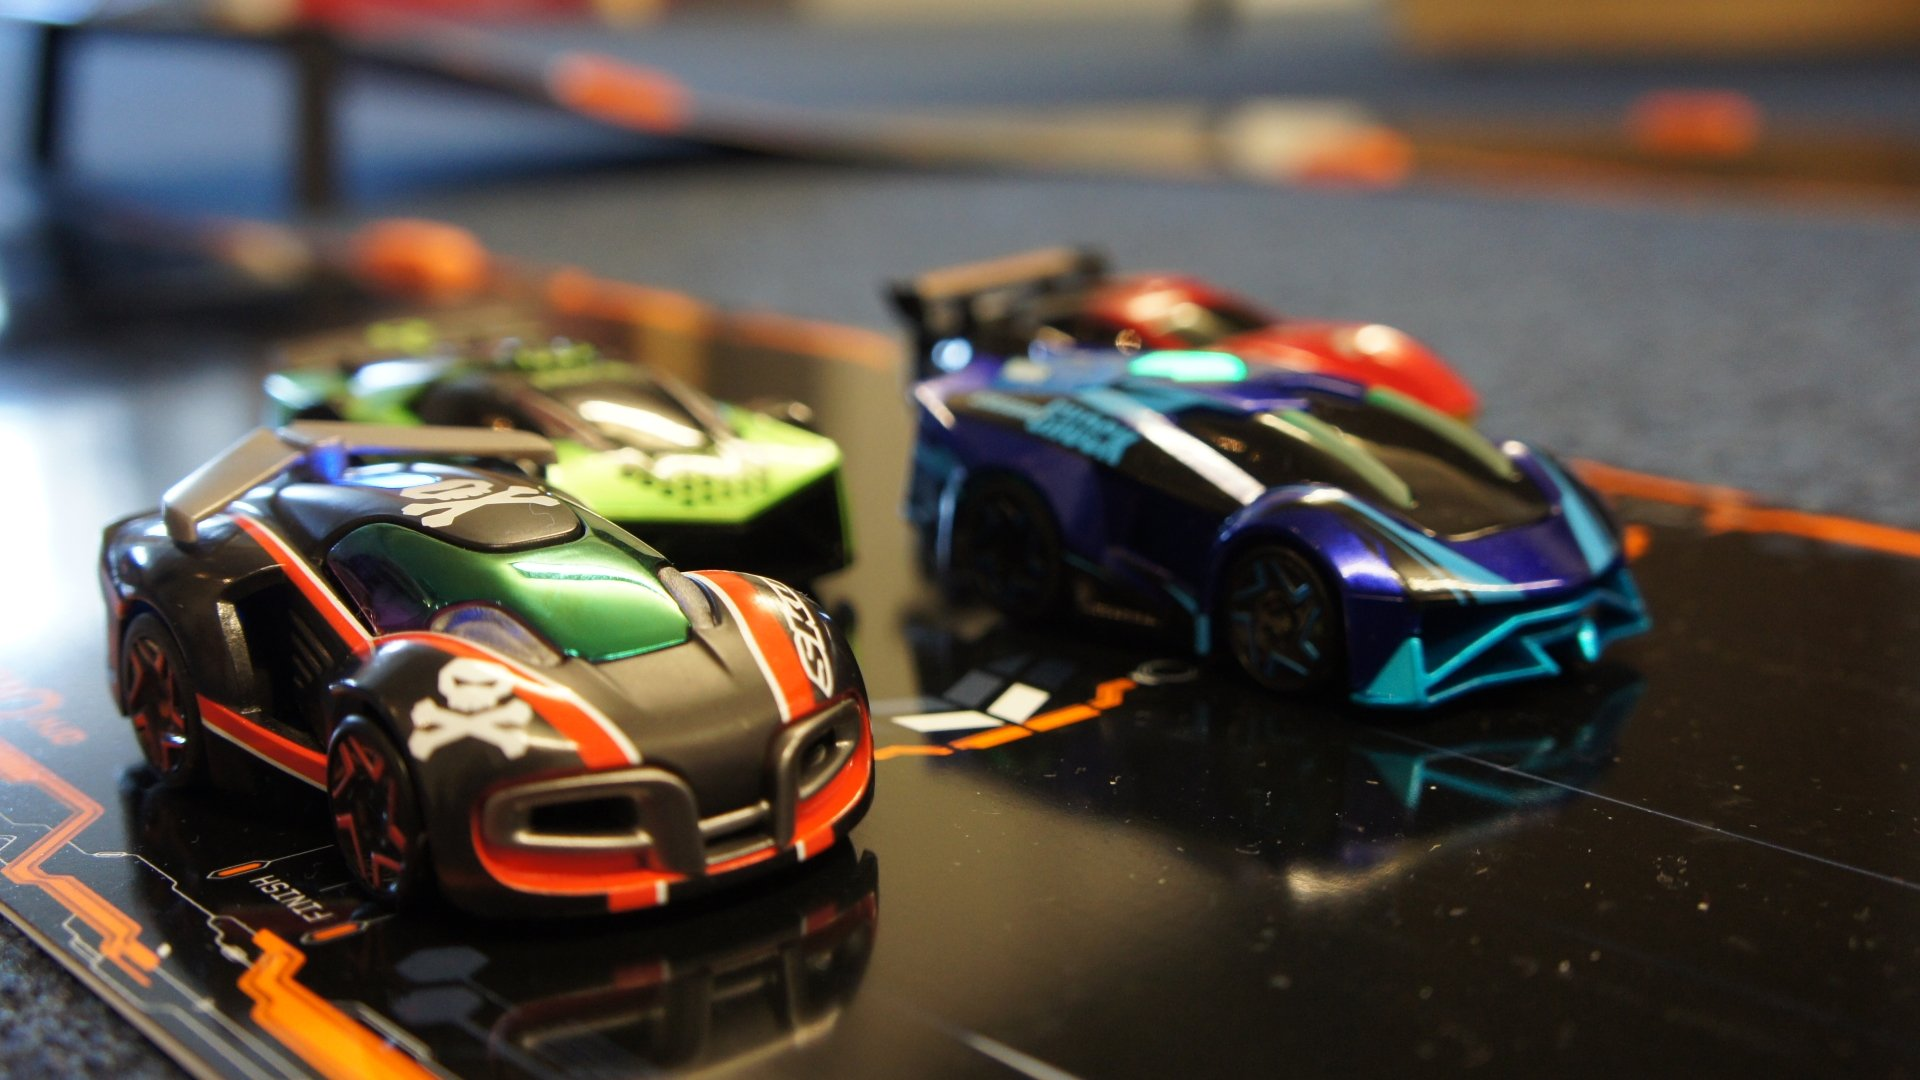 Anki Overdrive Review Scalextric For The Smartphone Age Just Got Cheaper Expert Reviews